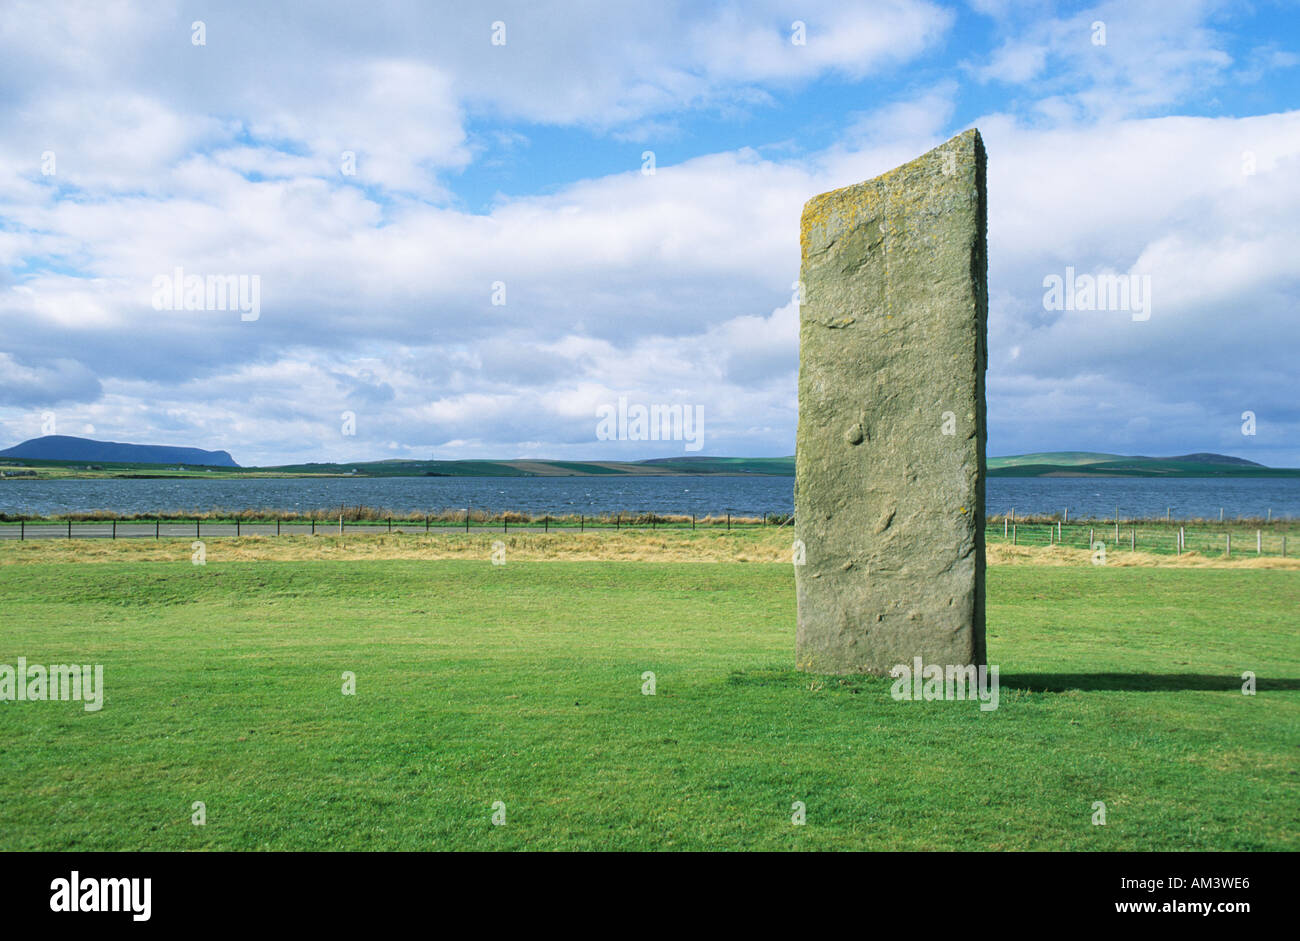 single stone at Standing stones of Stenness neolithic monument, Orkney, Scotland - Stock Image